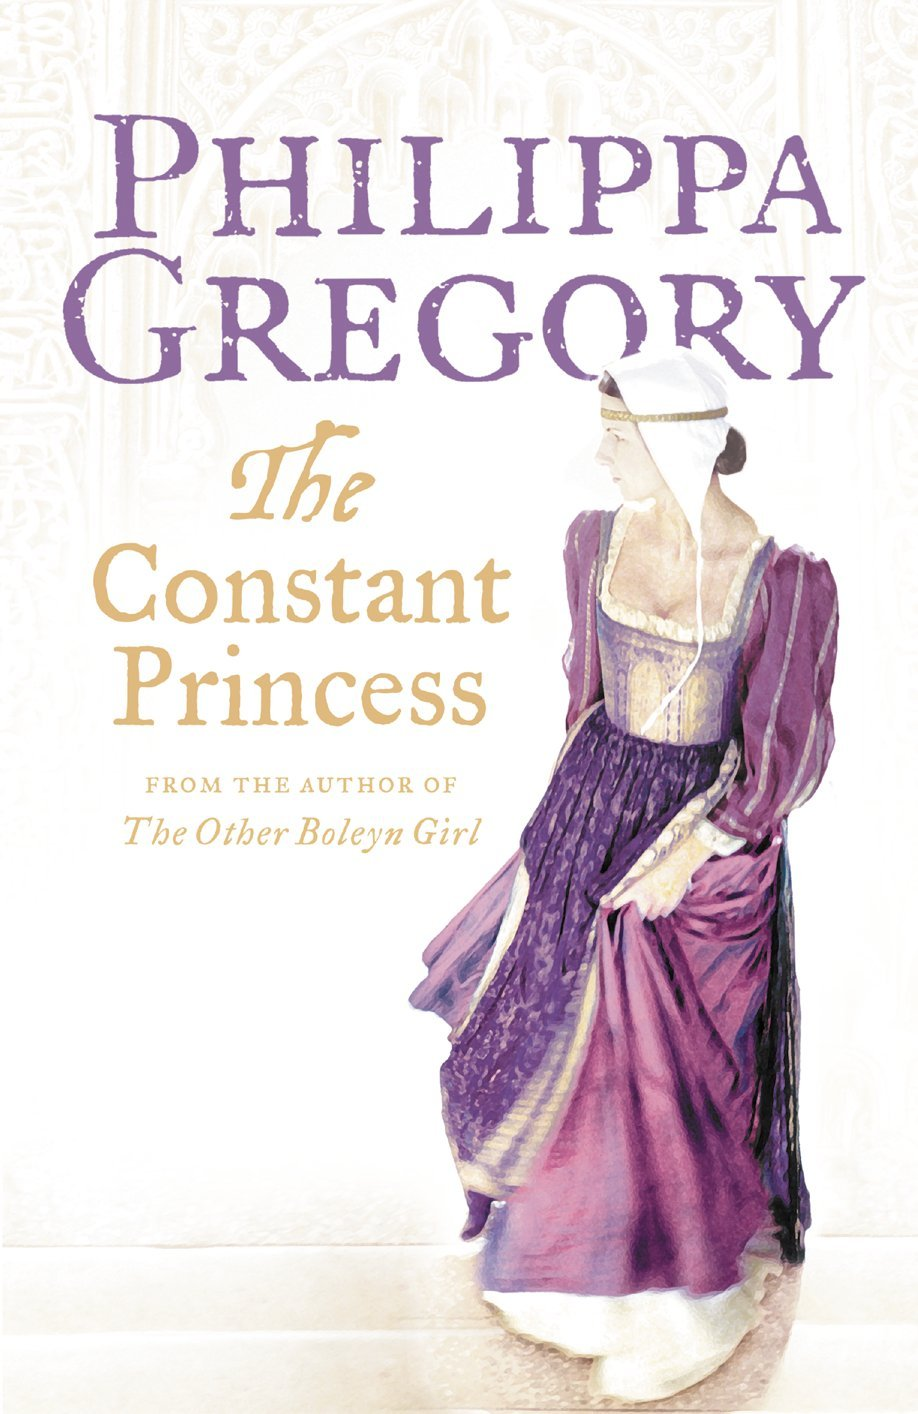 The Constant Princess UK Cover